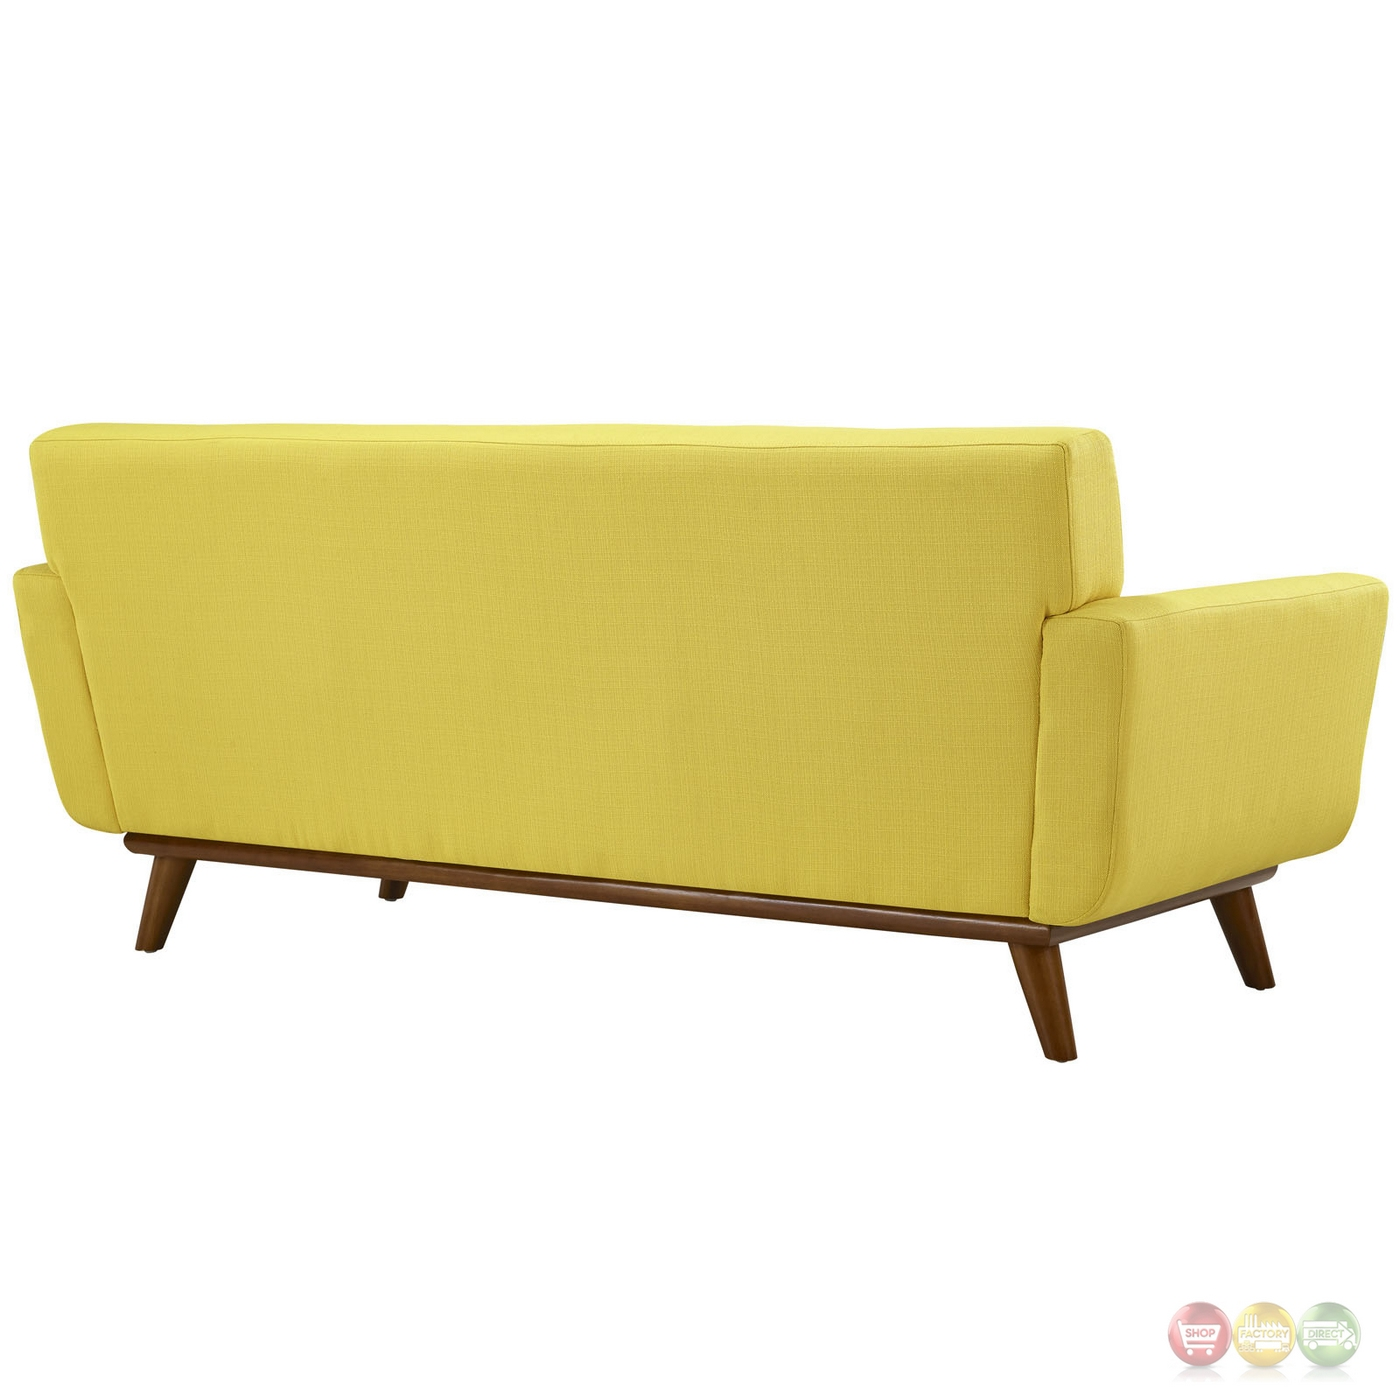 Engage Modern 2pc Upholstered Button tufted Loveseat And  : engage modern 2pc upholstered button tufted loveseat and sofa sunny 6 from shopfactorydirect.com size 1400 x 1400 jpeg 338kB